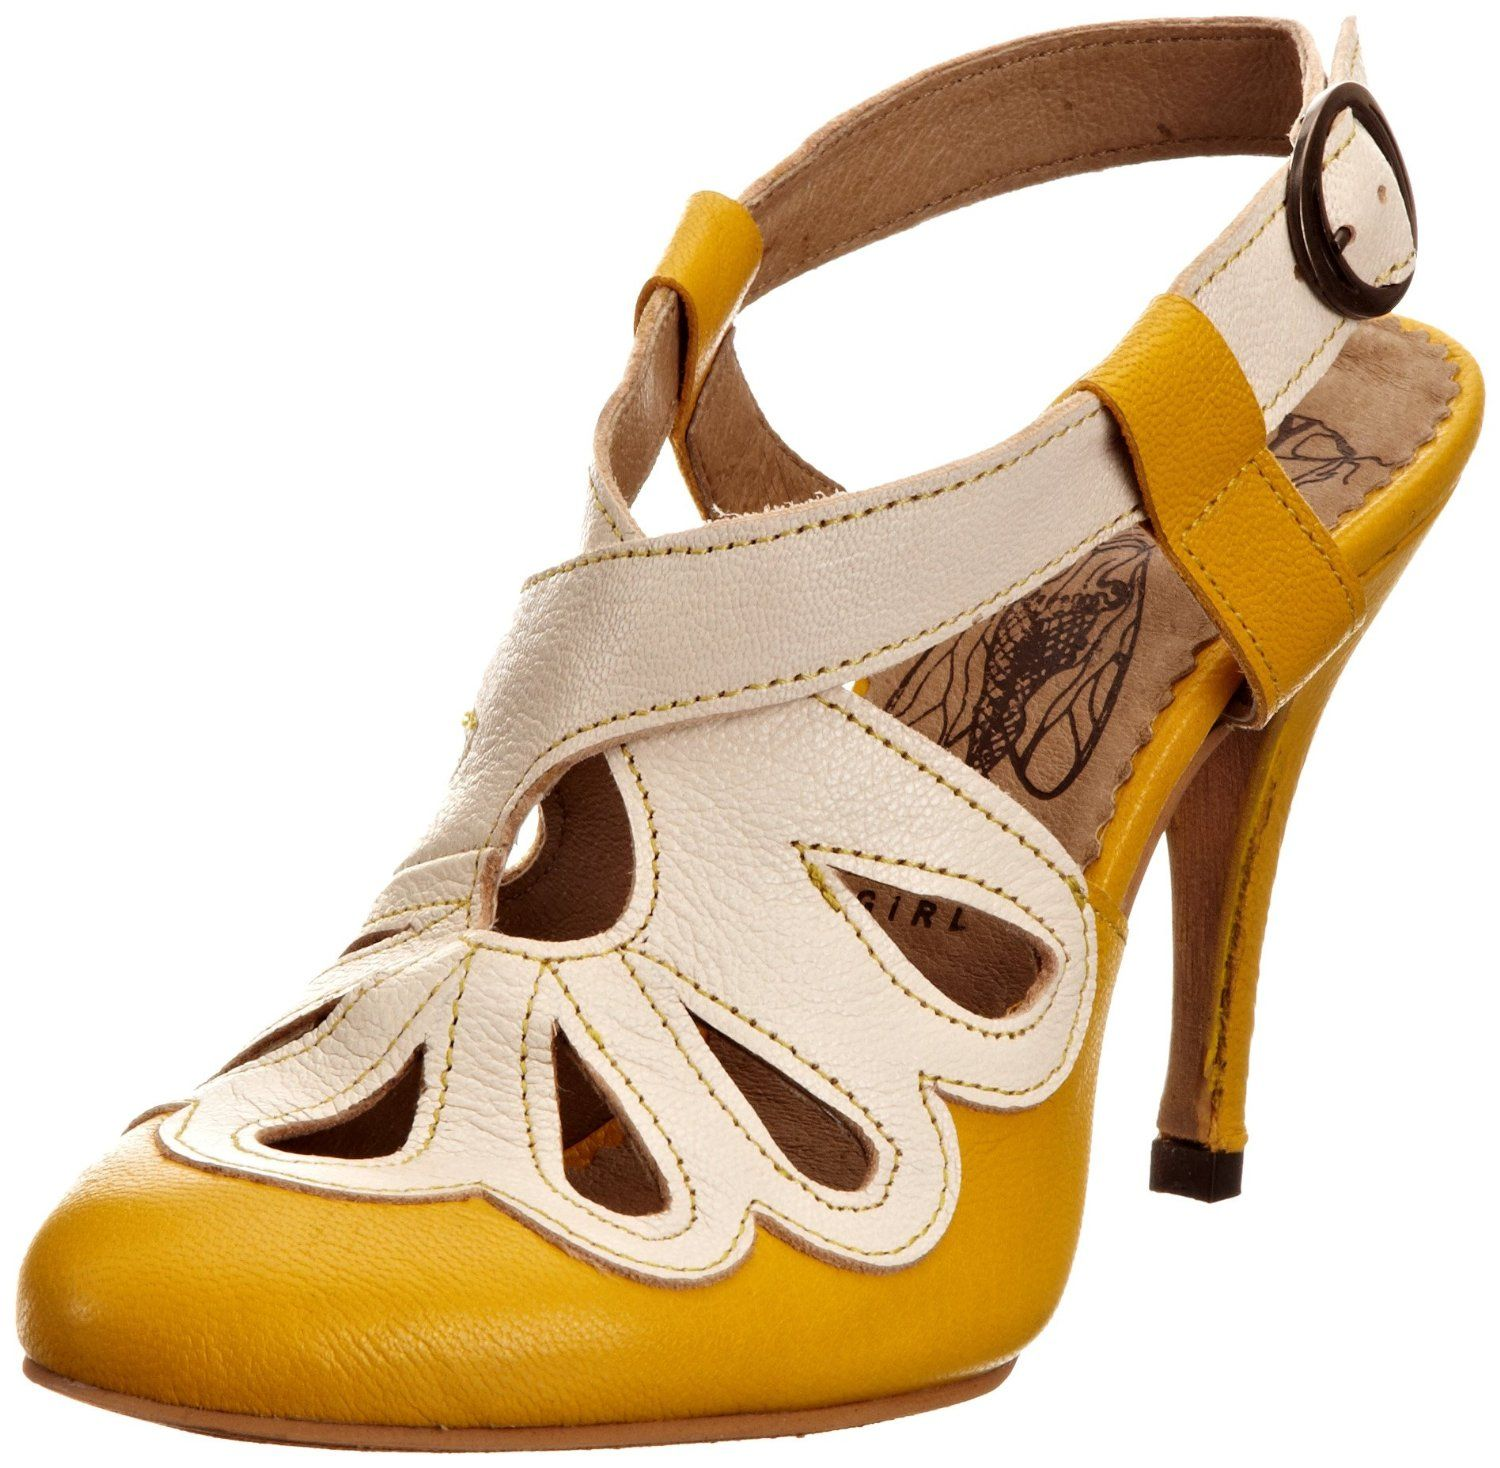 2f7a045c19 FLY London shoes - Google Search